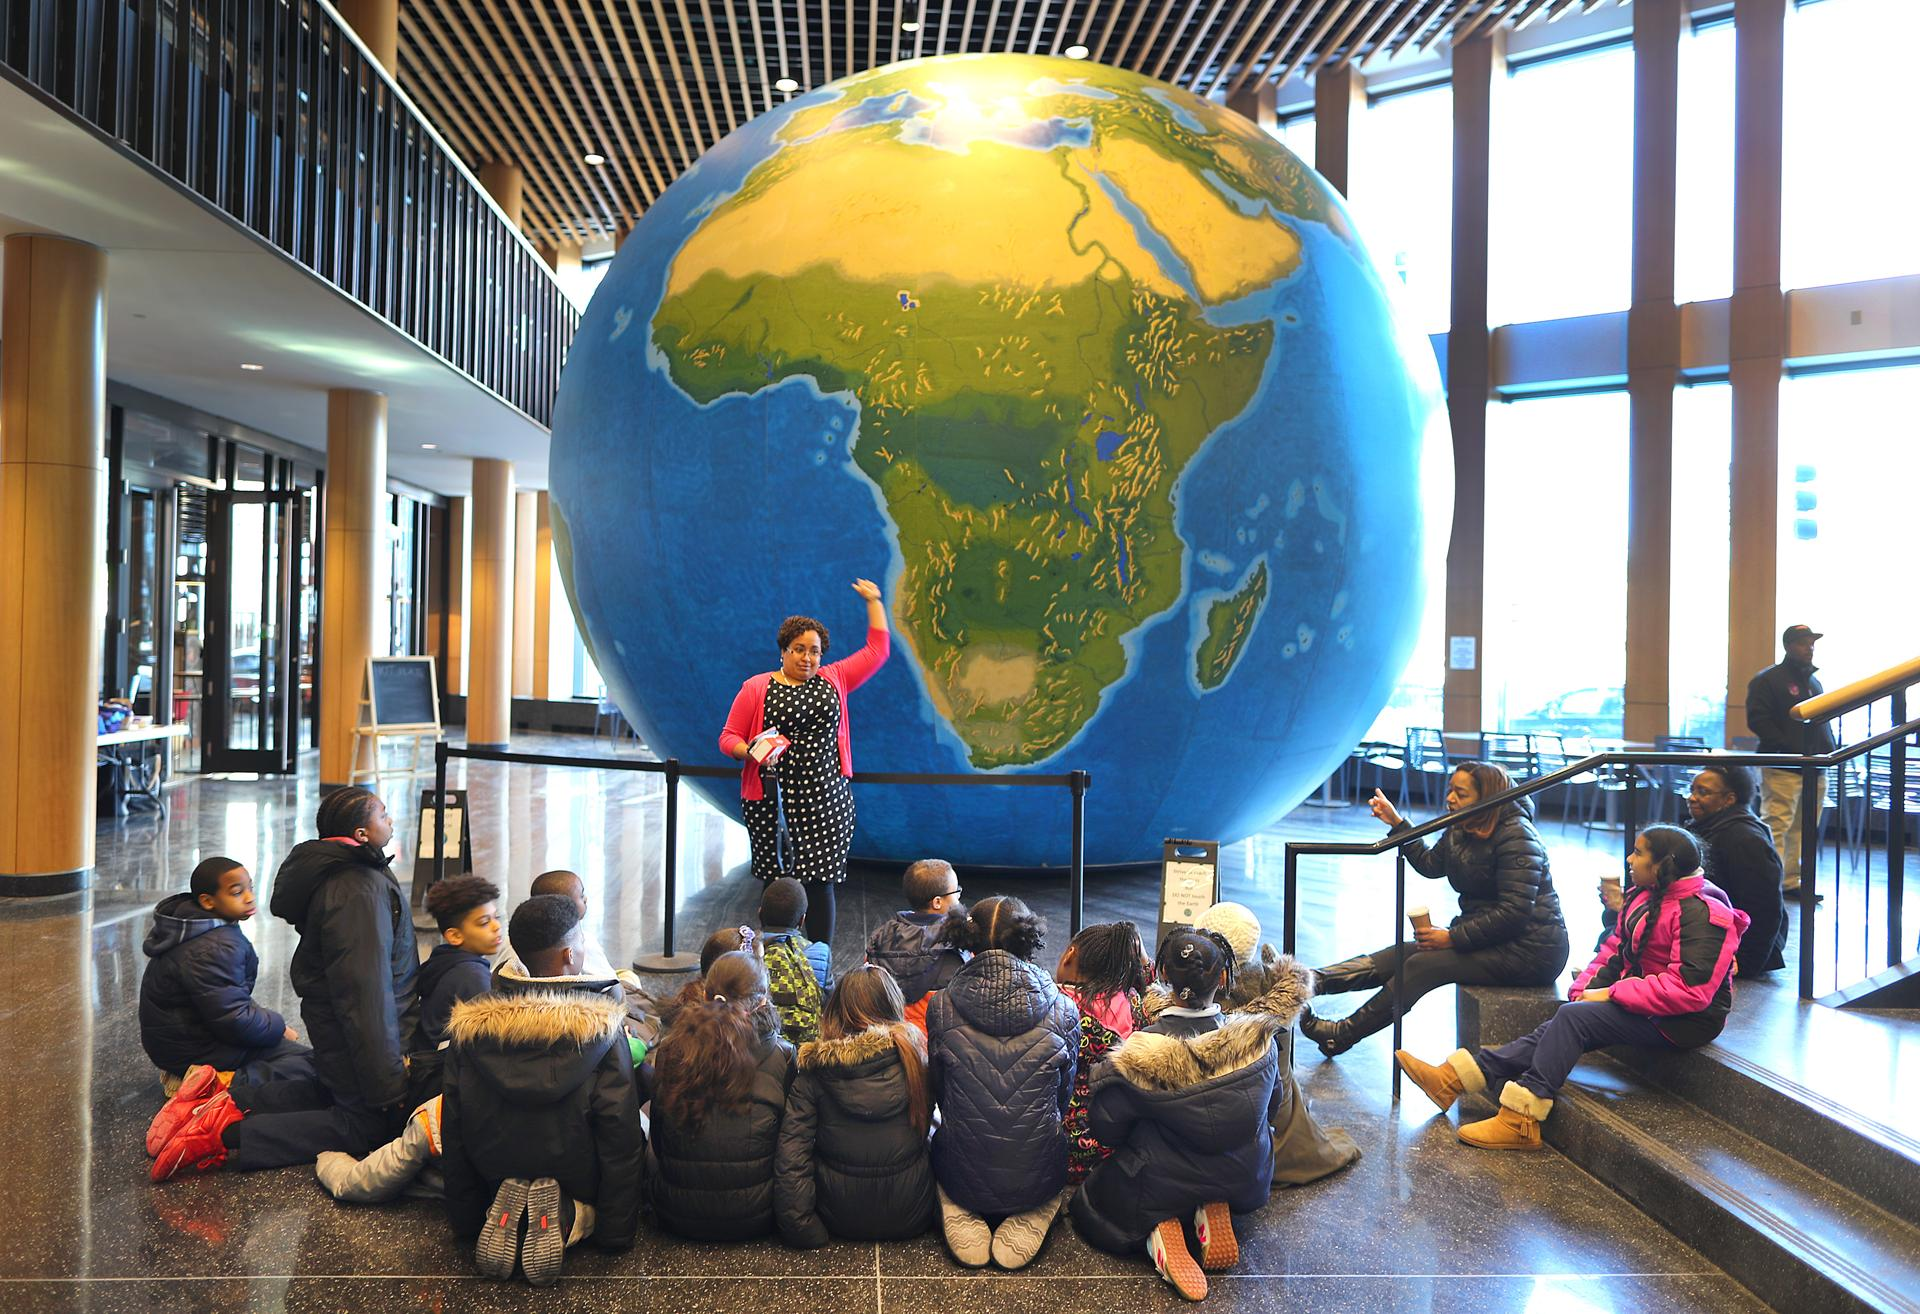 A Huge 20 Foot Inflatable Globe Was On Display At Boston Public School Headquarters